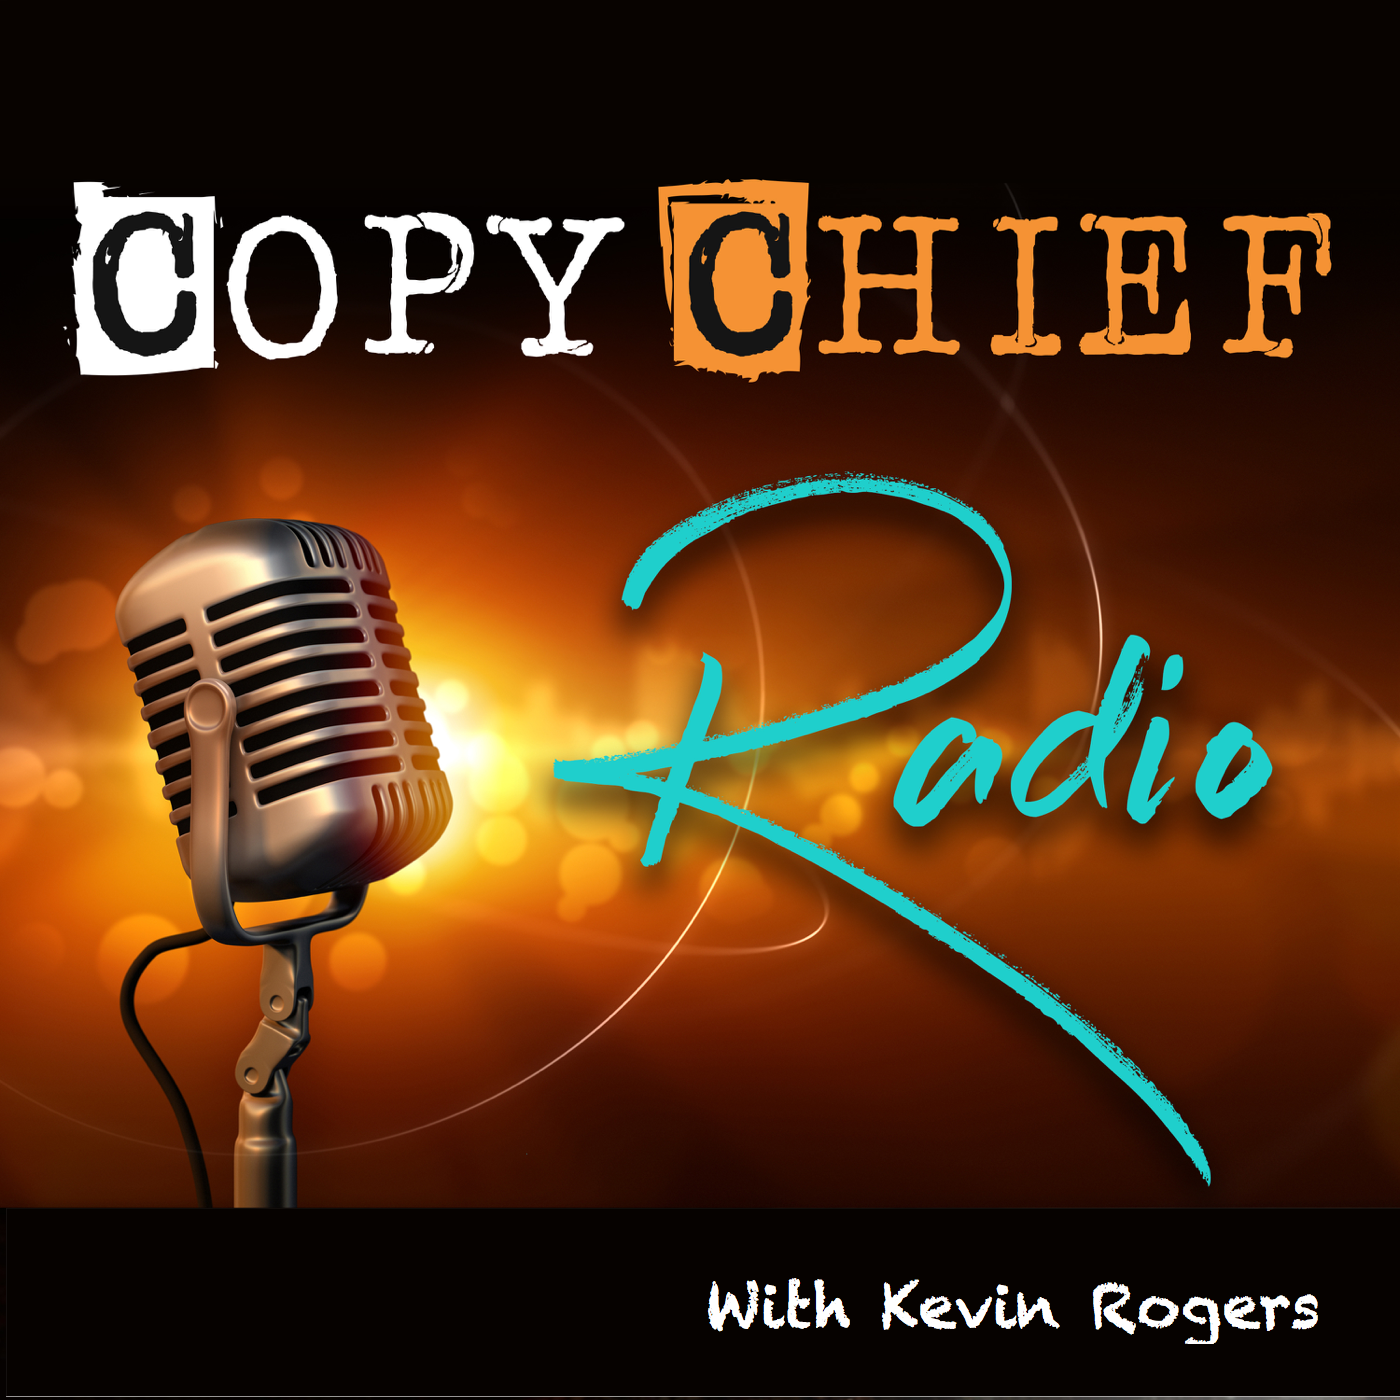 Copy Chief Radio show art